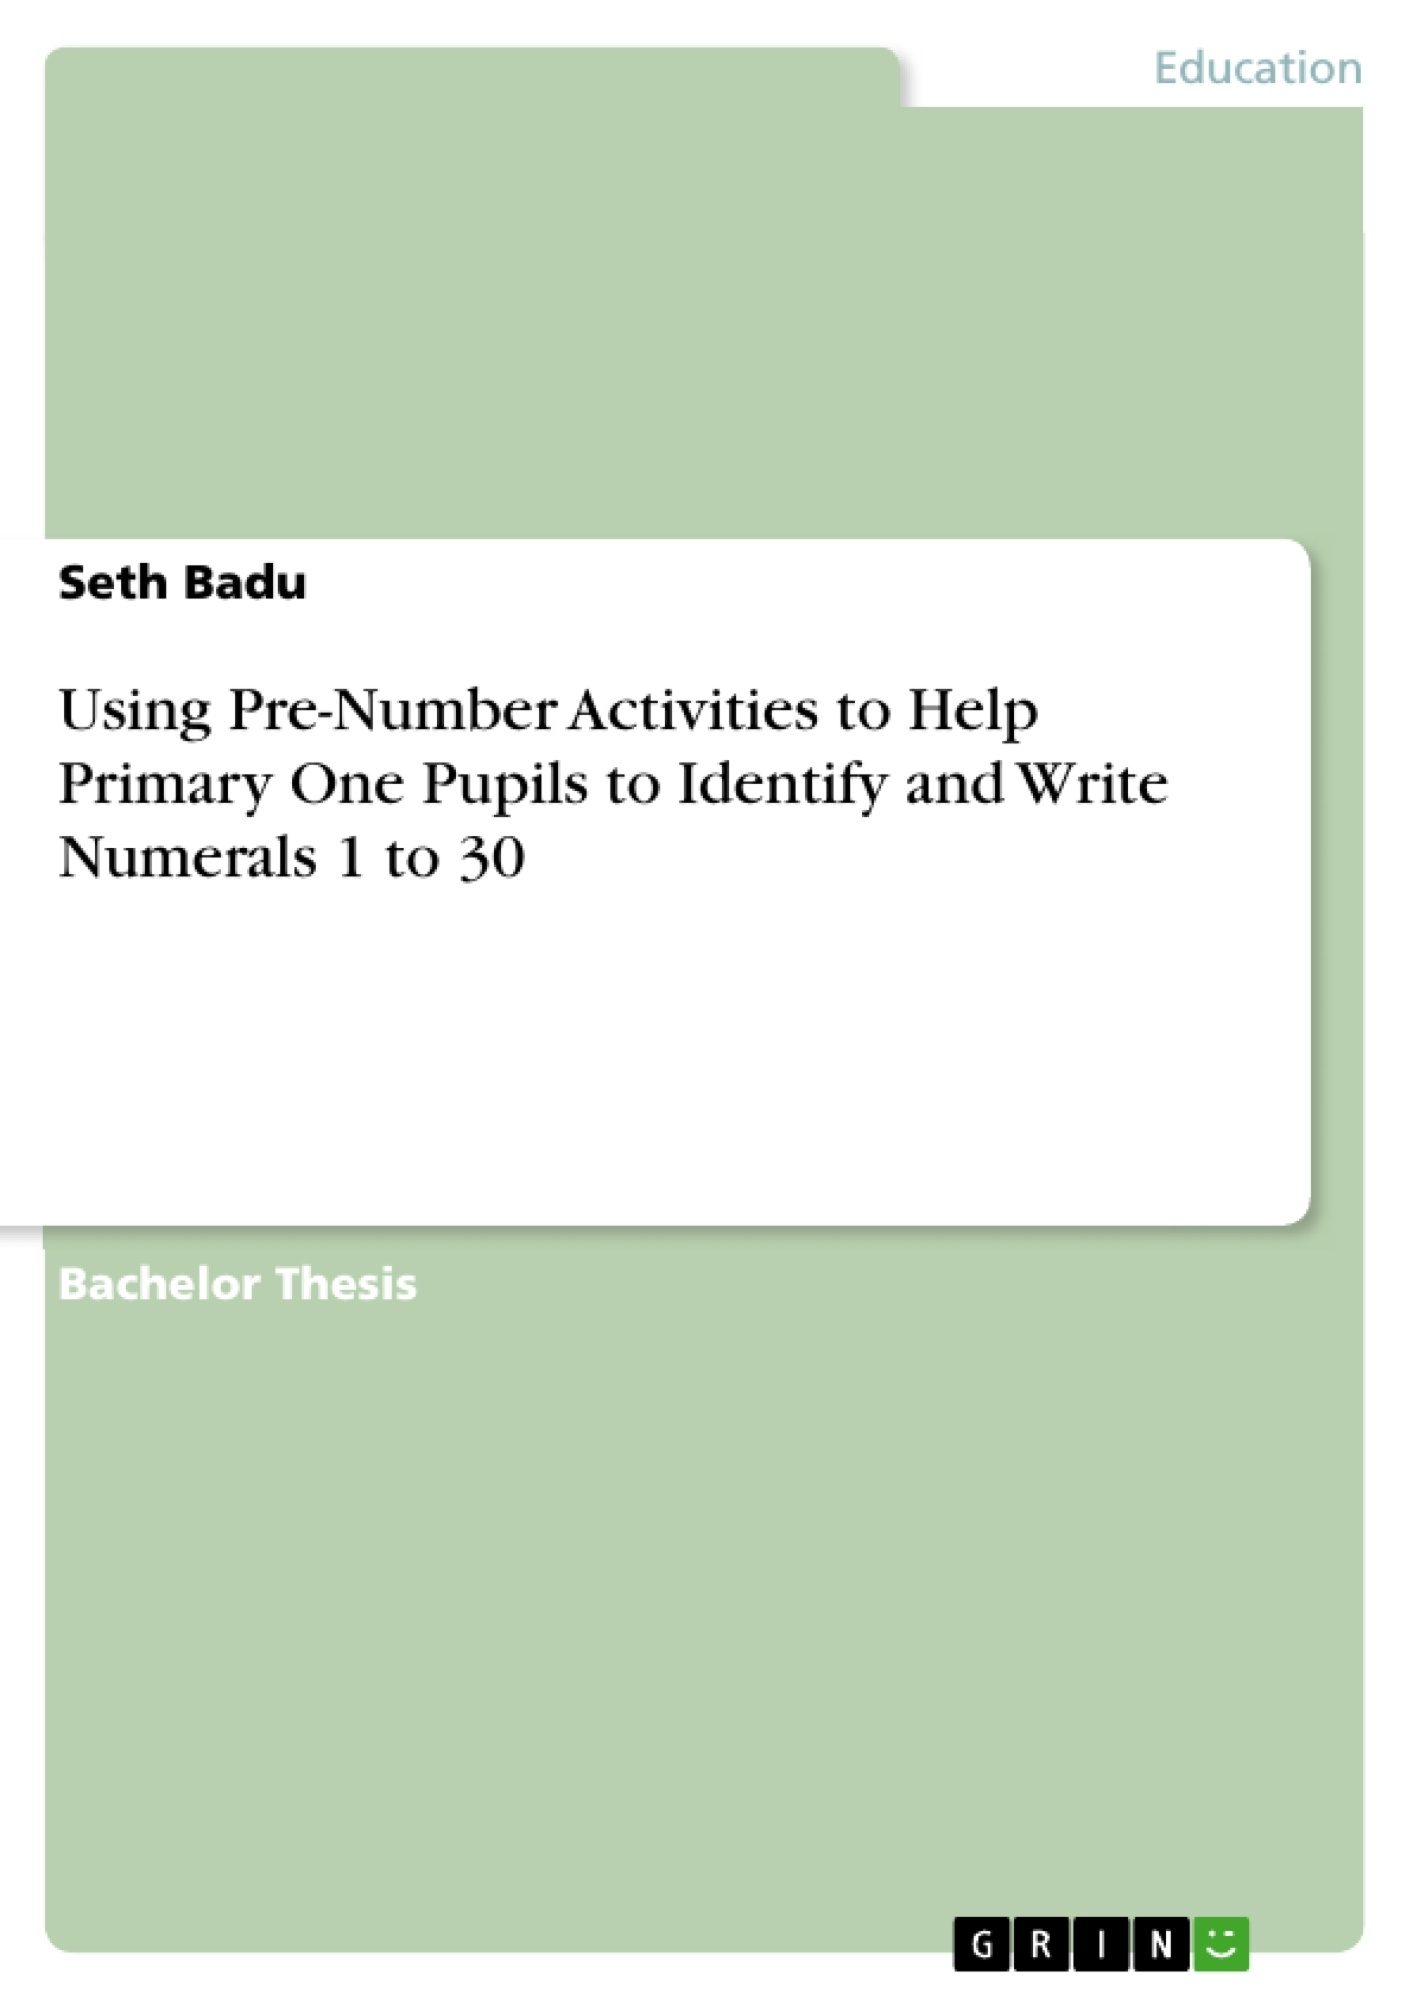 Title: Using Pre-Number Activities to Help Primary One Pupils to Identify and Write Numerals 1 to 30